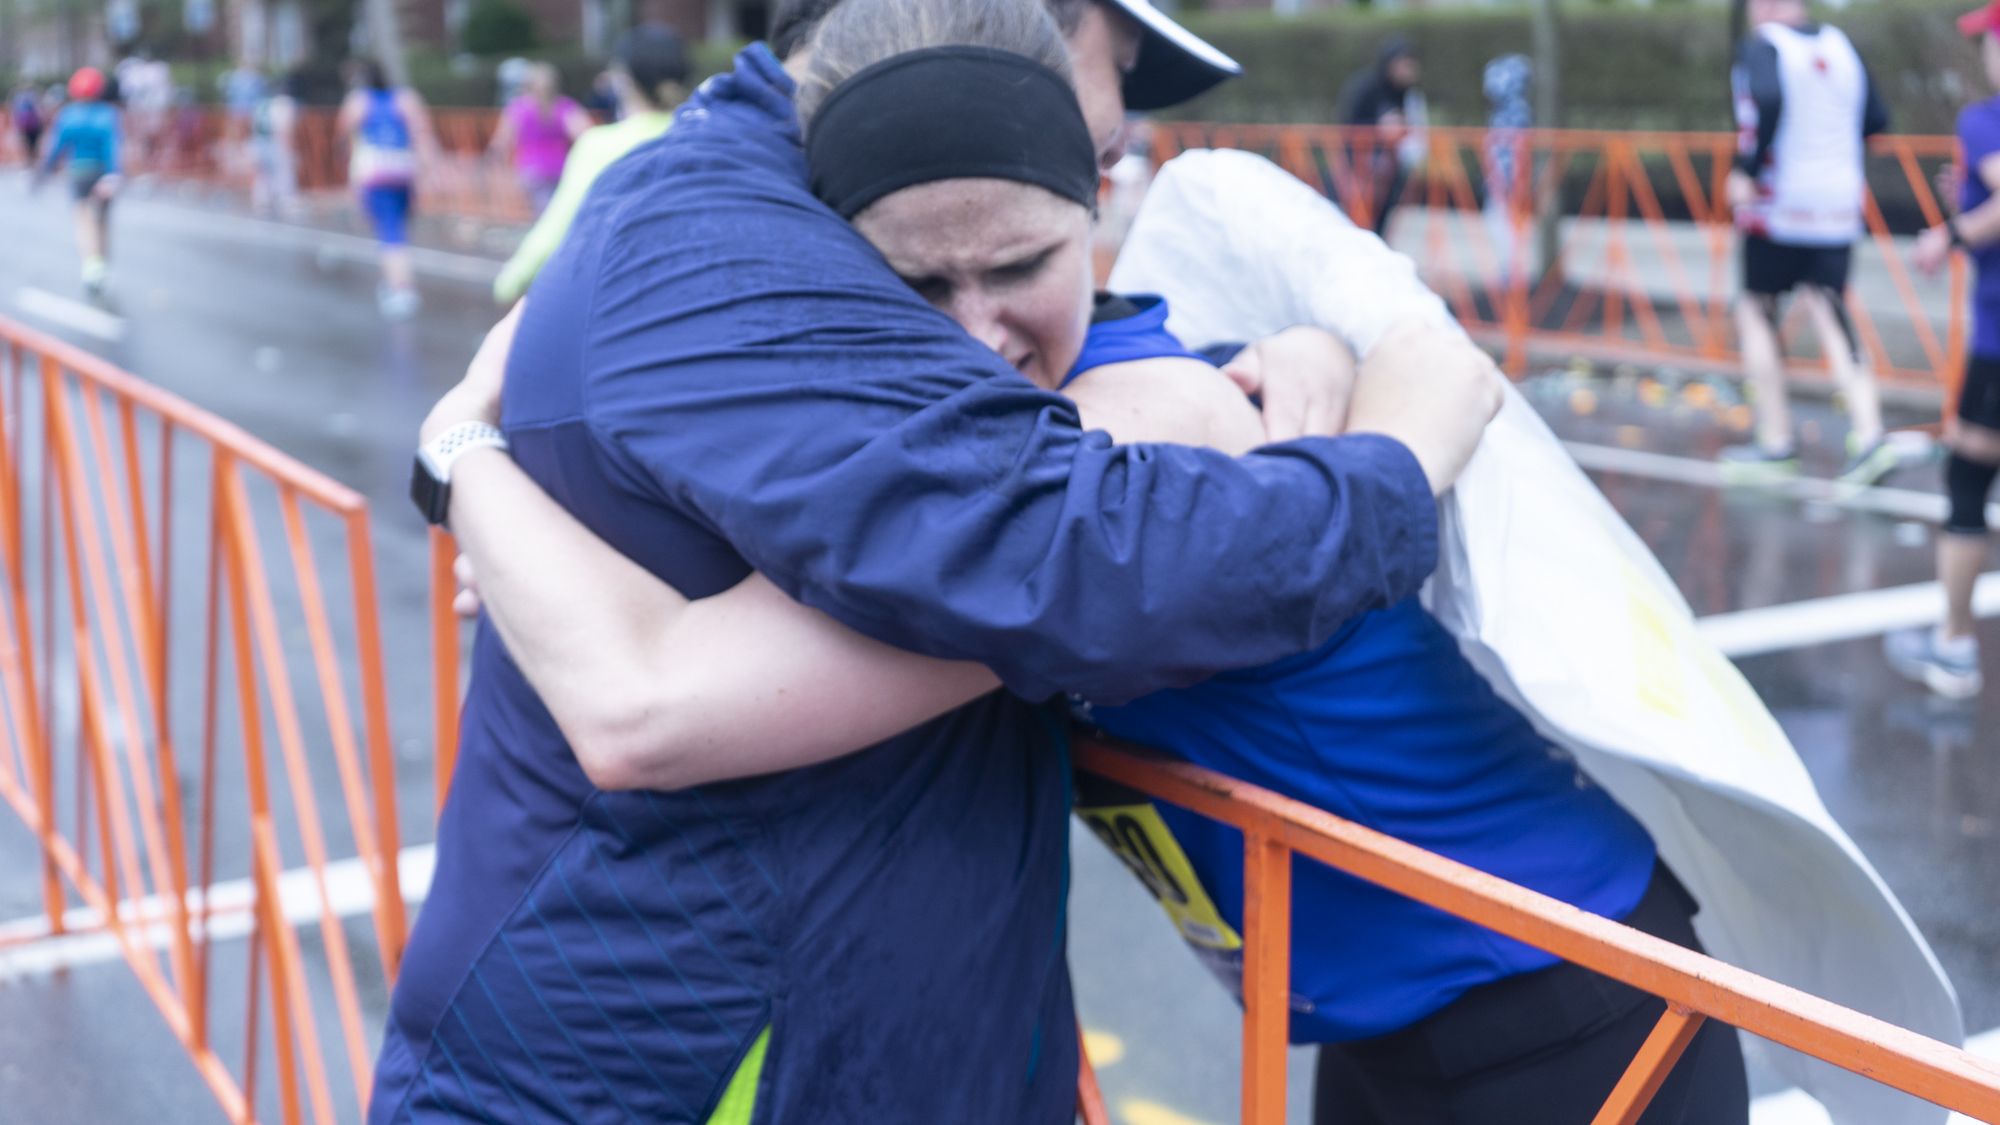 Erin Connors hugging NBP's VP of Development, Joe Quintanilla at mile 24 of the Boston Marathon.